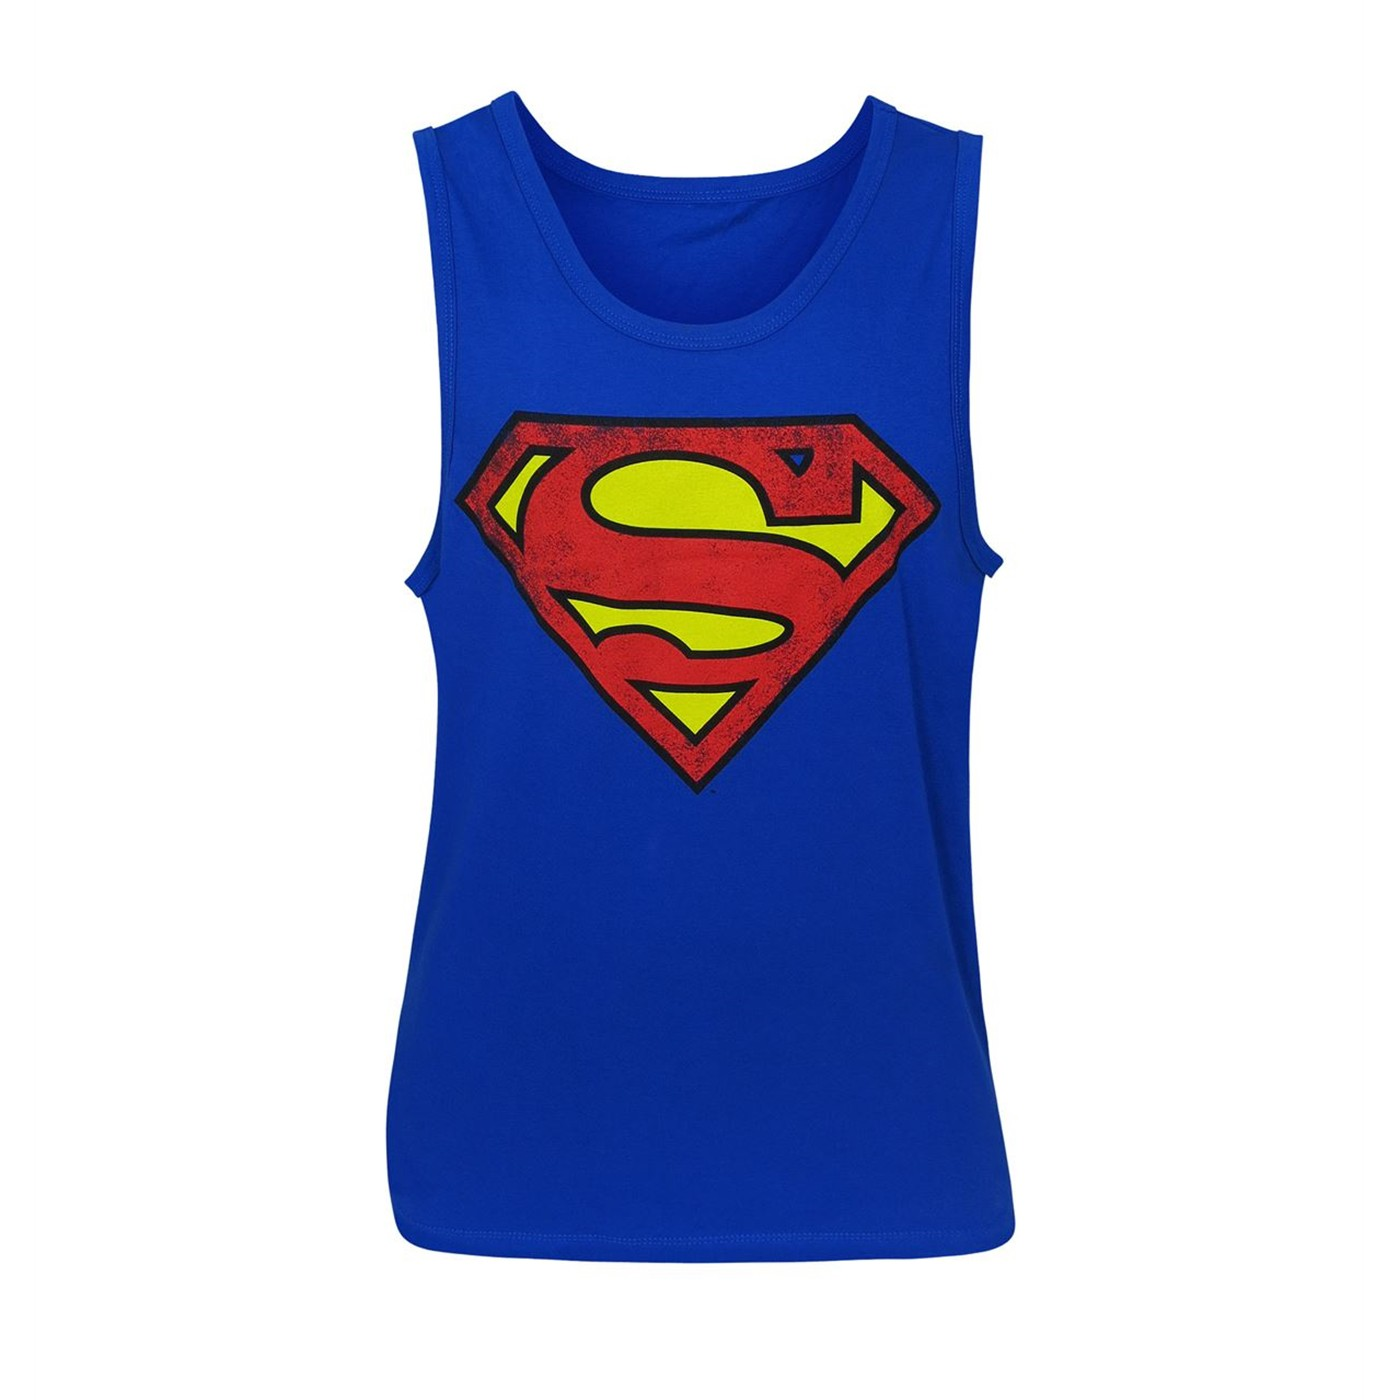 Superman Royal Blue Distressed Symbol Tank Top